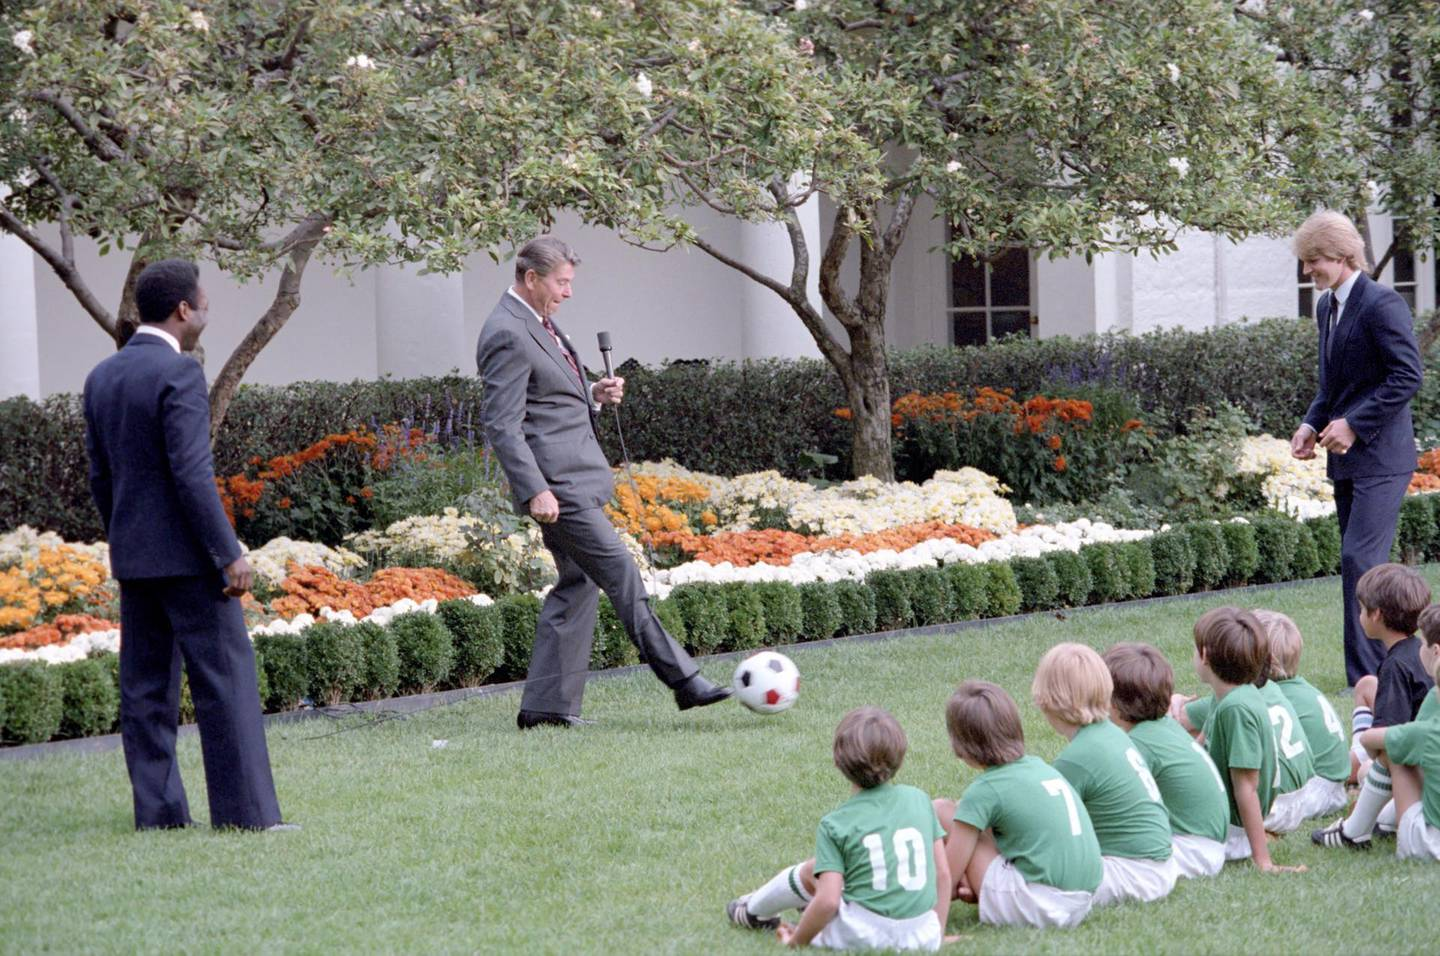 10/14/1982 President Reagan with soccer demonstration with children and Pele and Steve Moyers in the Rose Garden